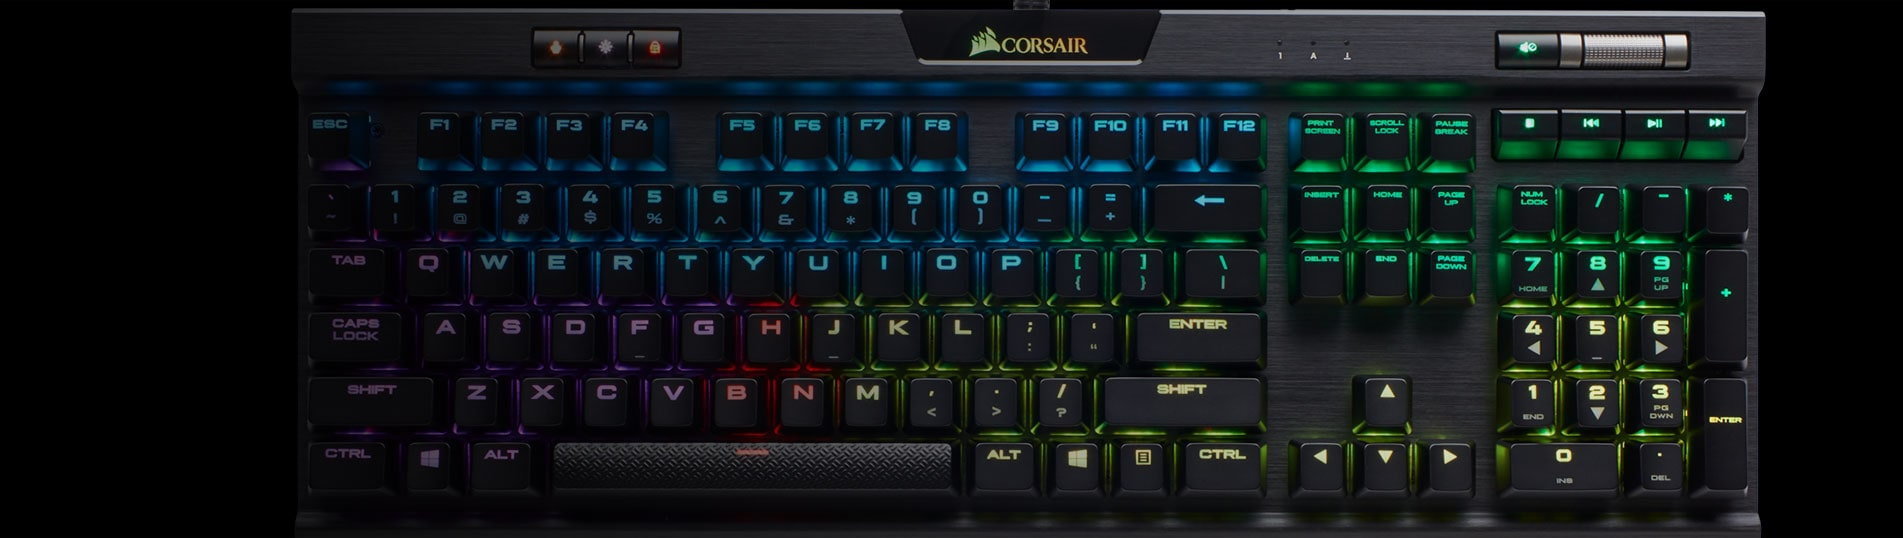 Gaming Keyboards | RGB Gaming Keyboards | Wireless Gaming Keyboards